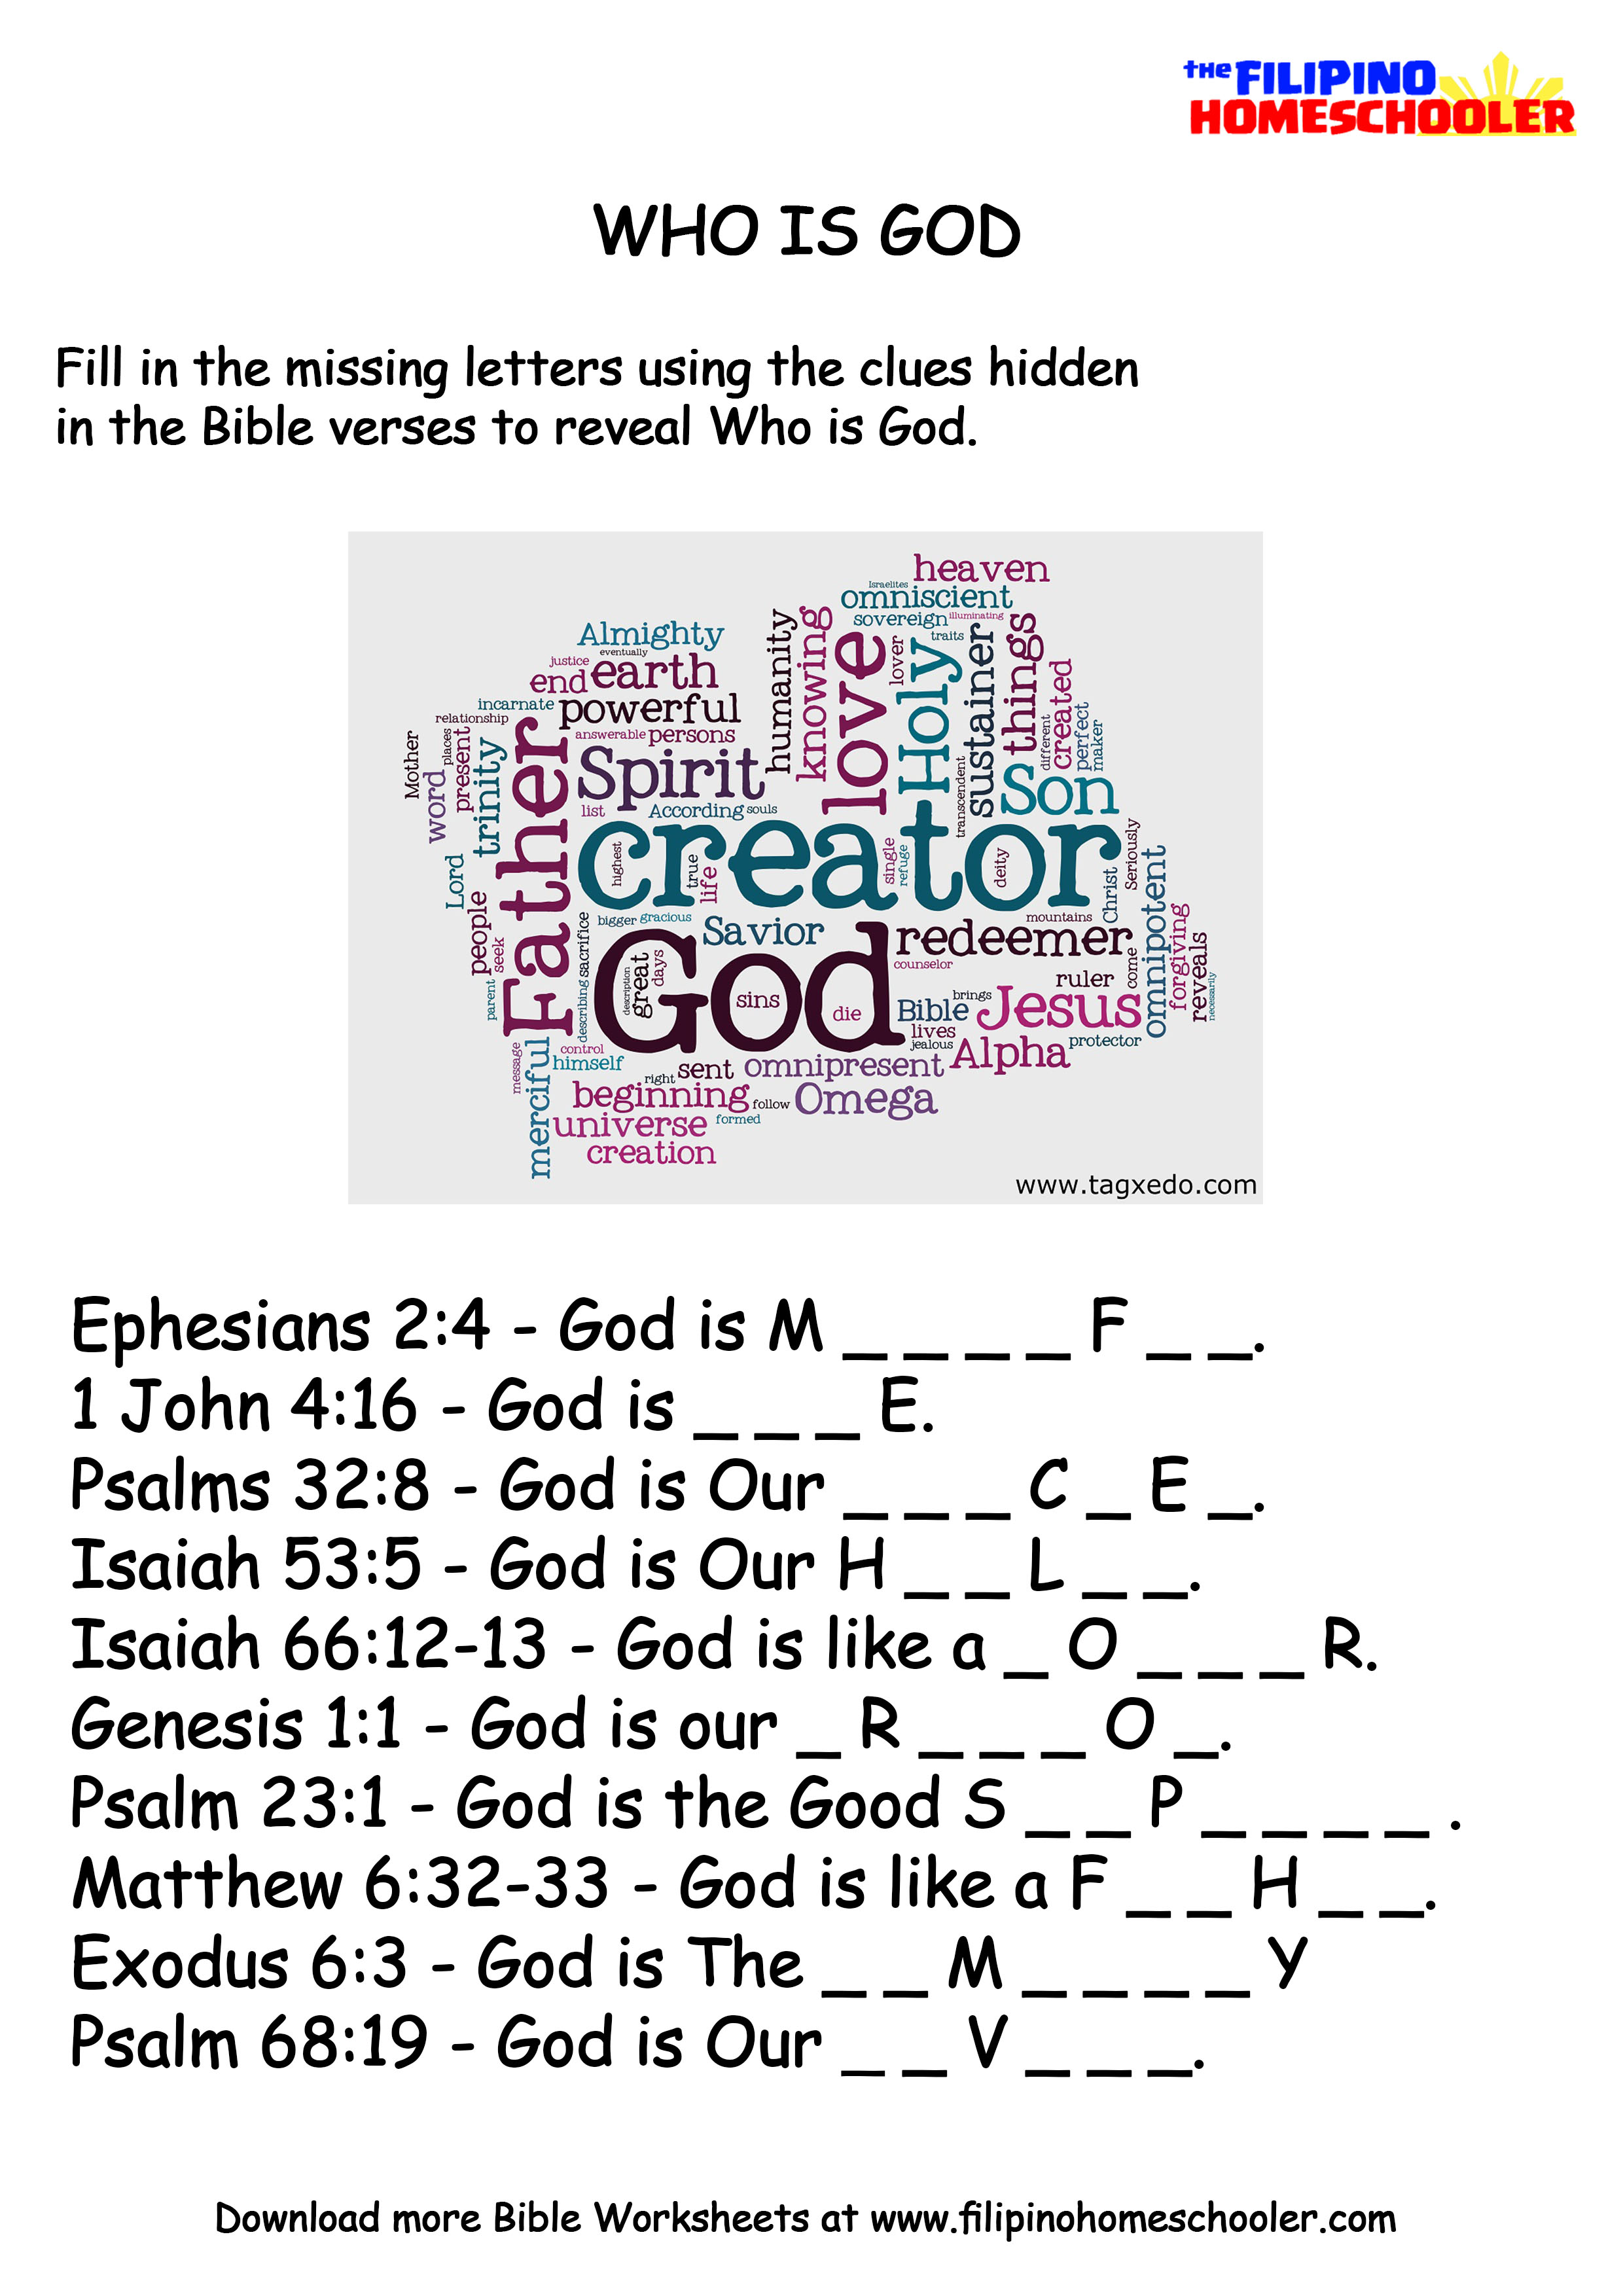 Who is God Learning Activity The Filipino Homeschooler – Bible Worksheets